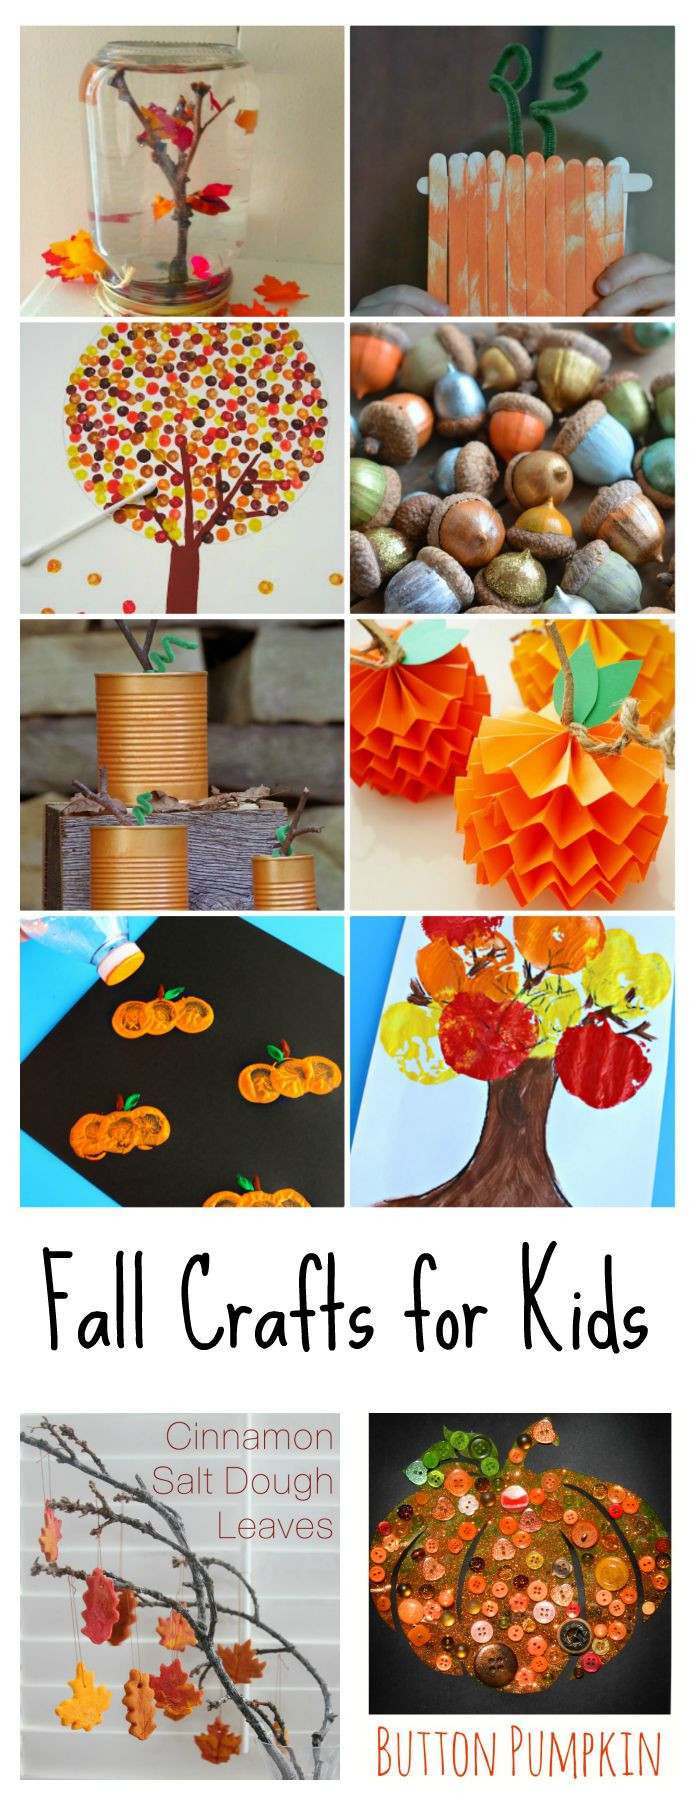 Best ideas about Craft Ideas Kids . Save or Pin Fall Crafts for Kids The Idea Room Now.